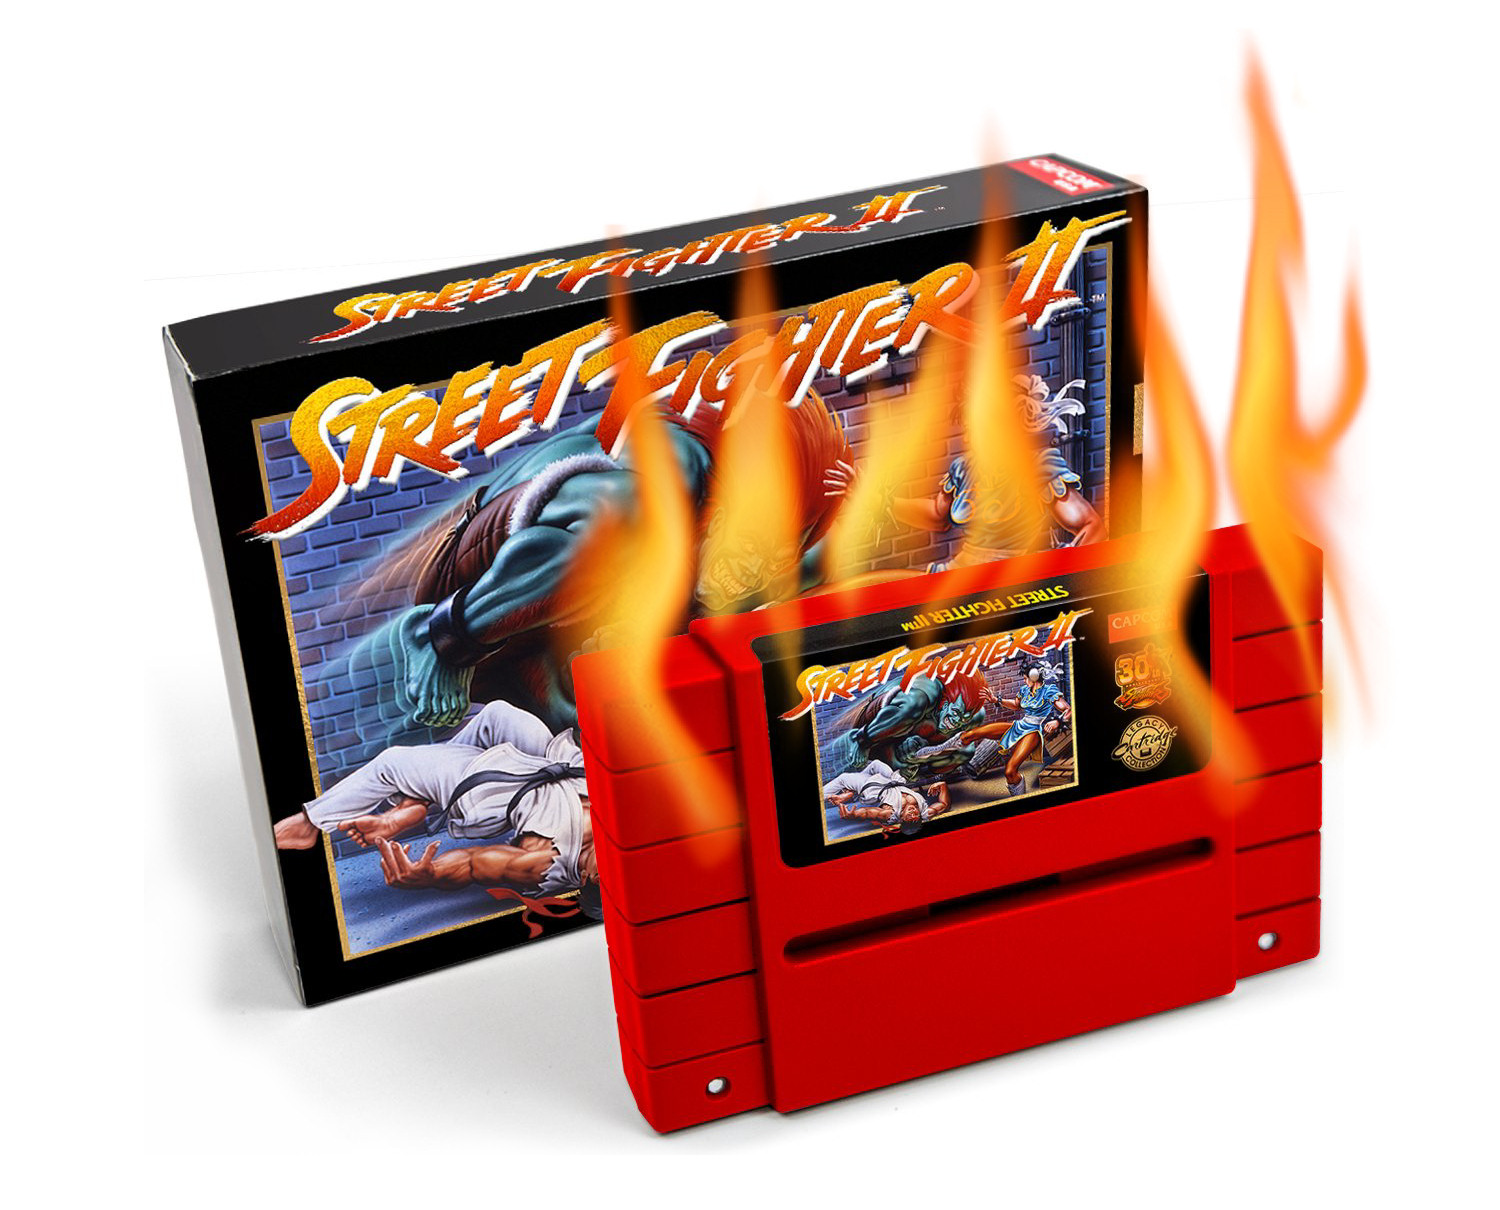 iam8bit Street Fighter II limited edition reproduction cartridge is a fire hazard on fire